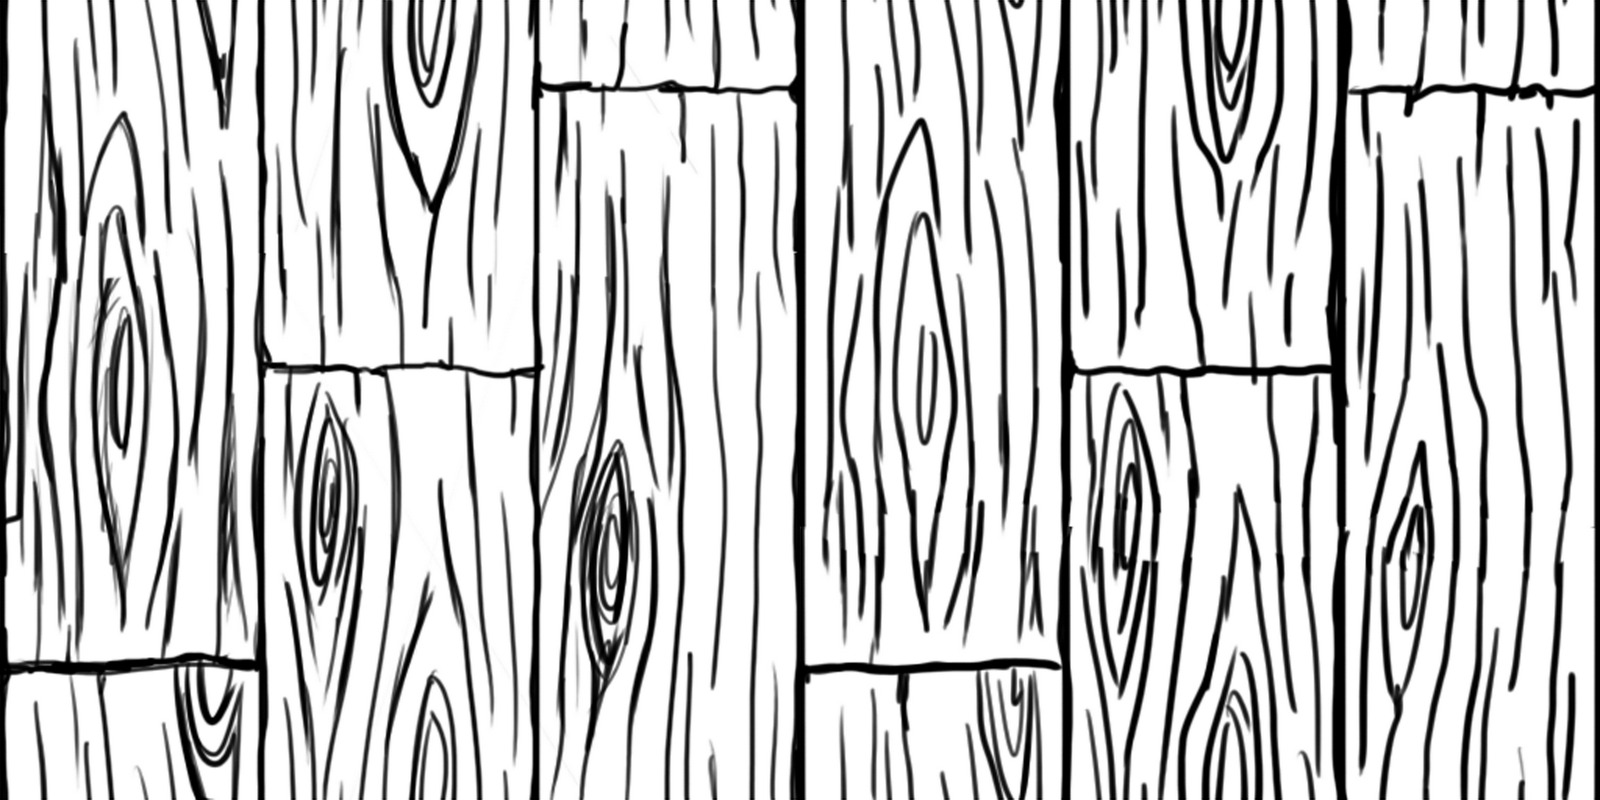 Line Art Wood Grain : Tree bark drawing pattern google search how to draw